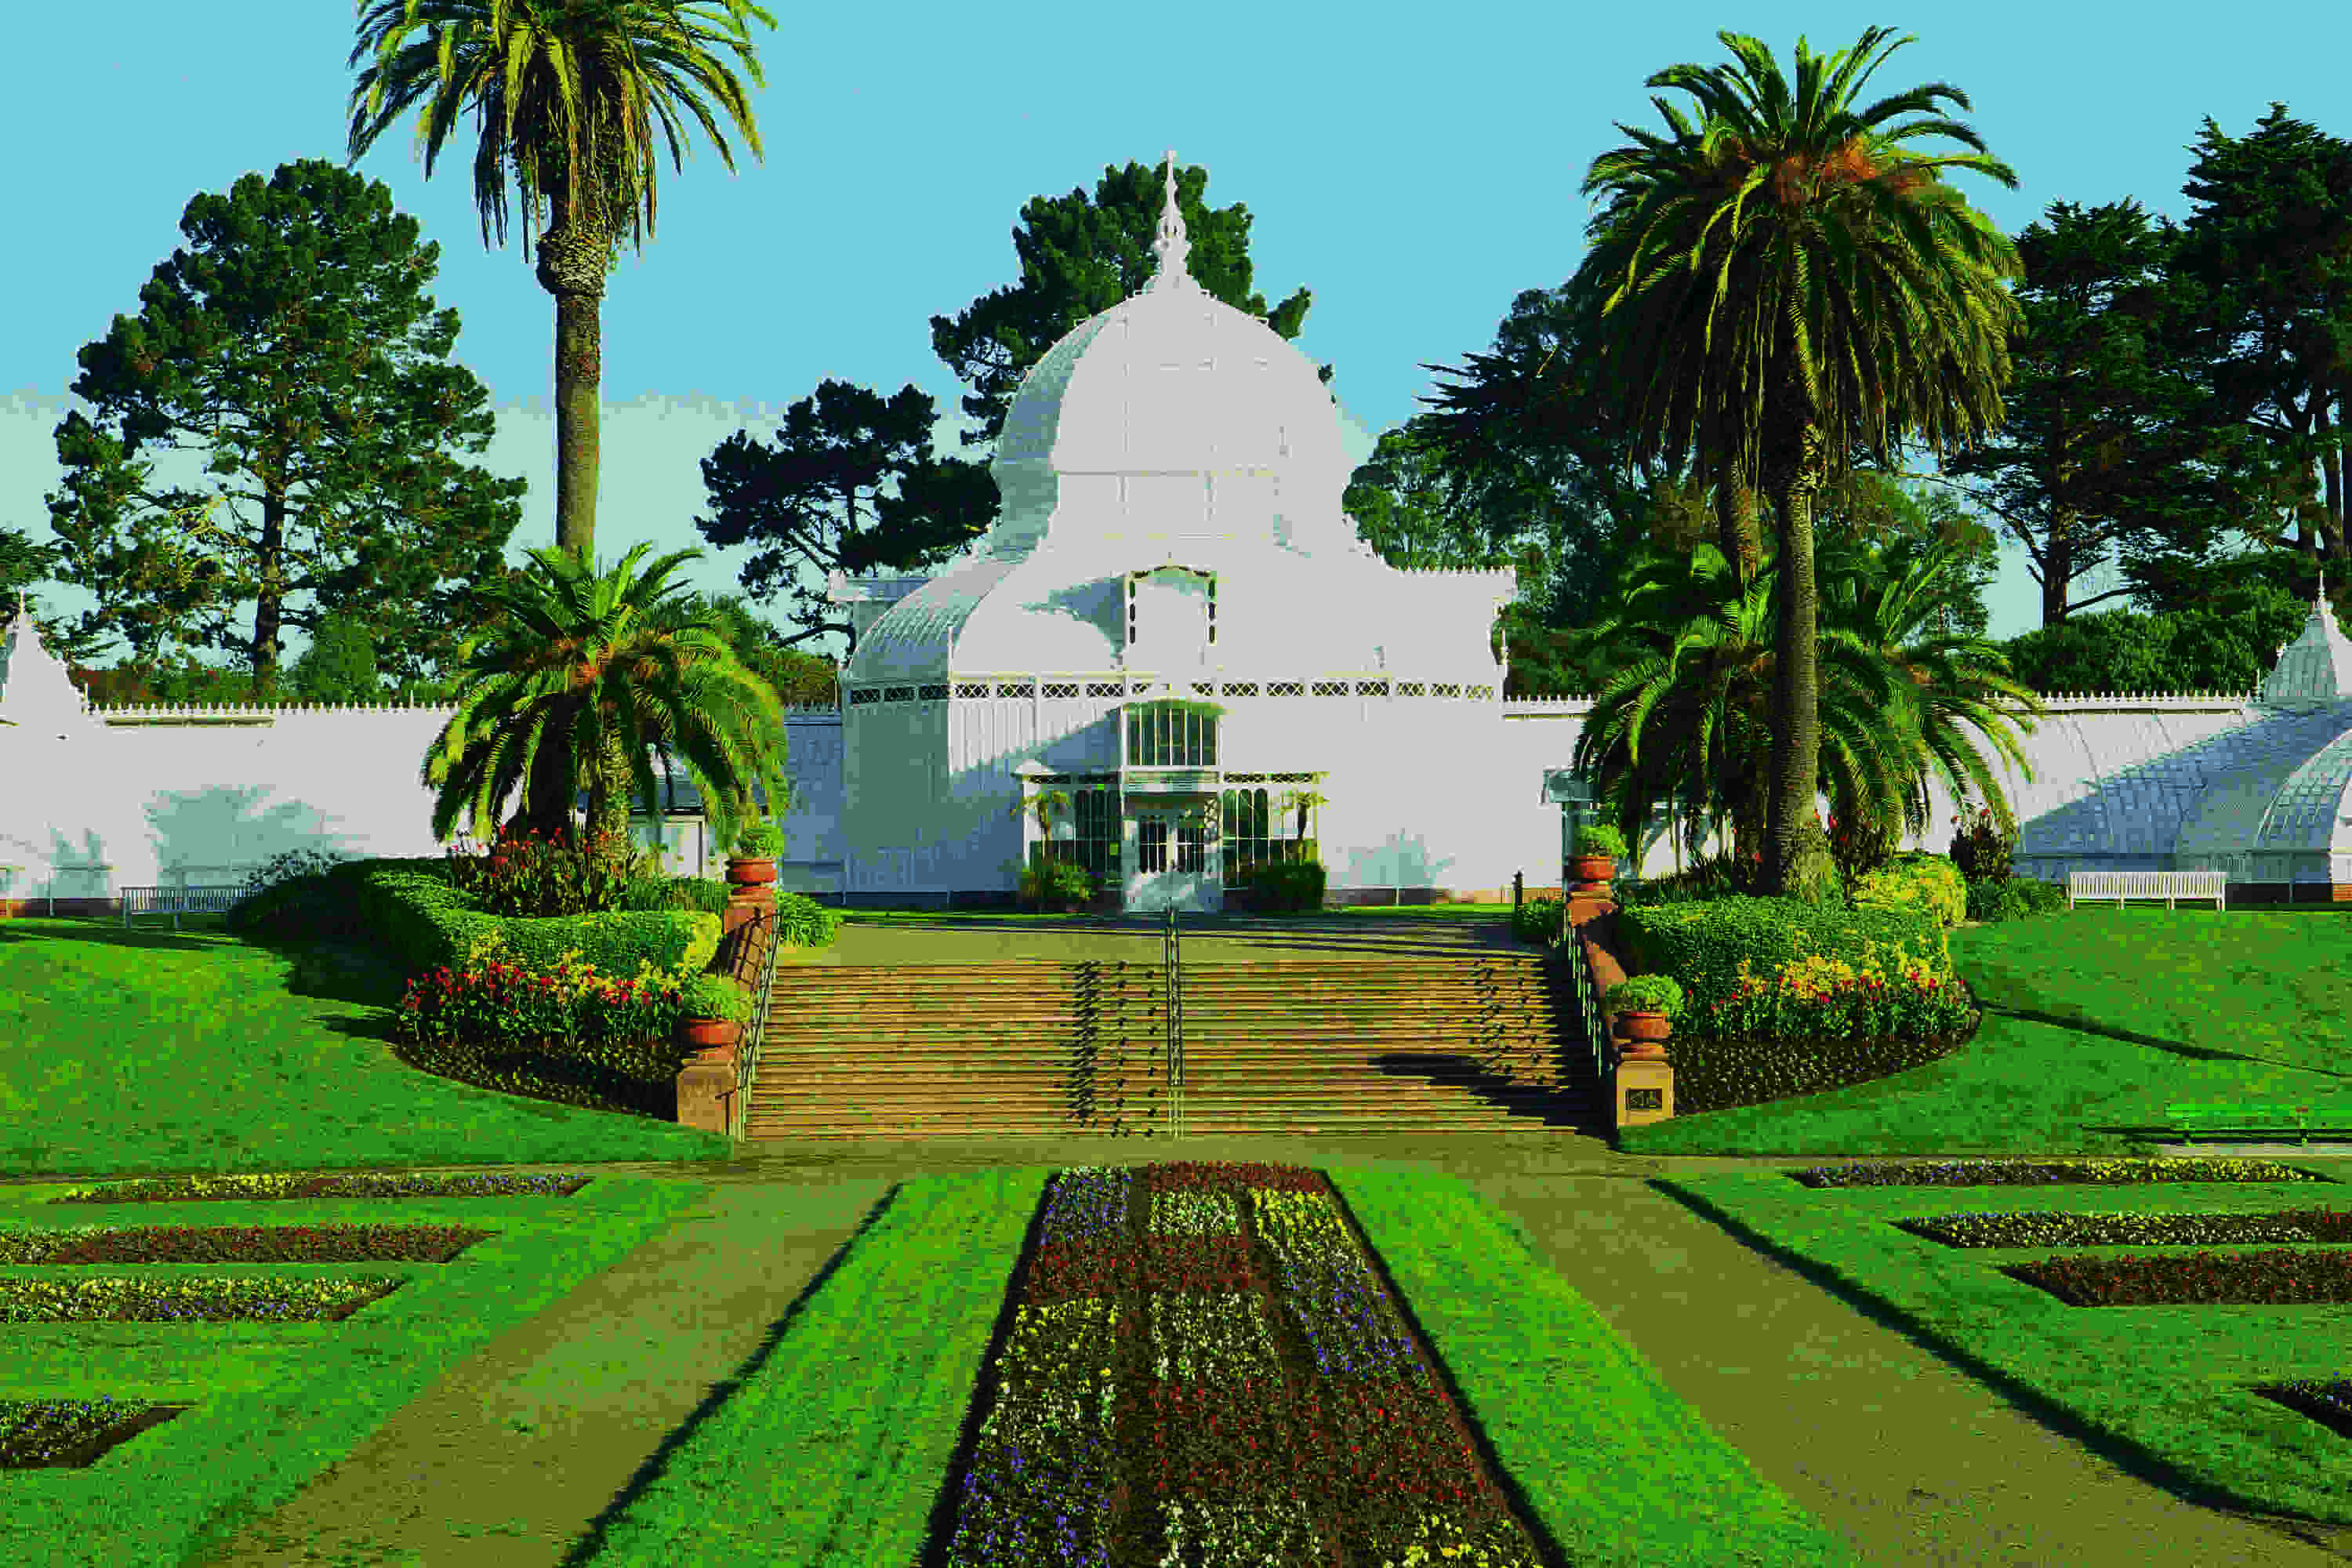 Conservatory of Flowers, nature, Golden Gate Park, activities, family-friendly, arts, culture